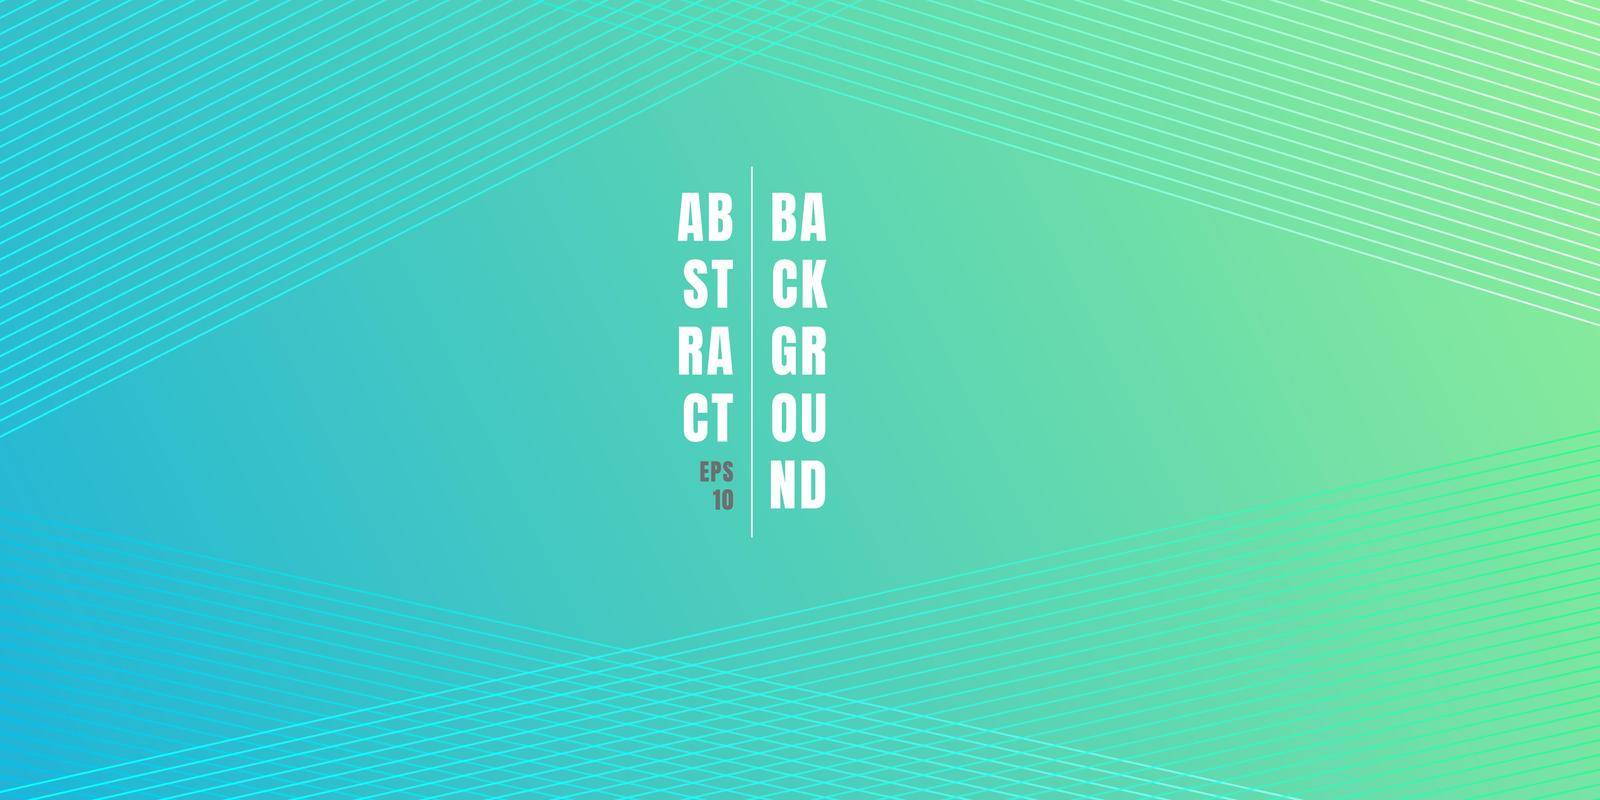 Abstract blue and green vibrant color gradient background with diagonal lines pattern texture. Soft light colored backdrop with place for text. Vector illustration